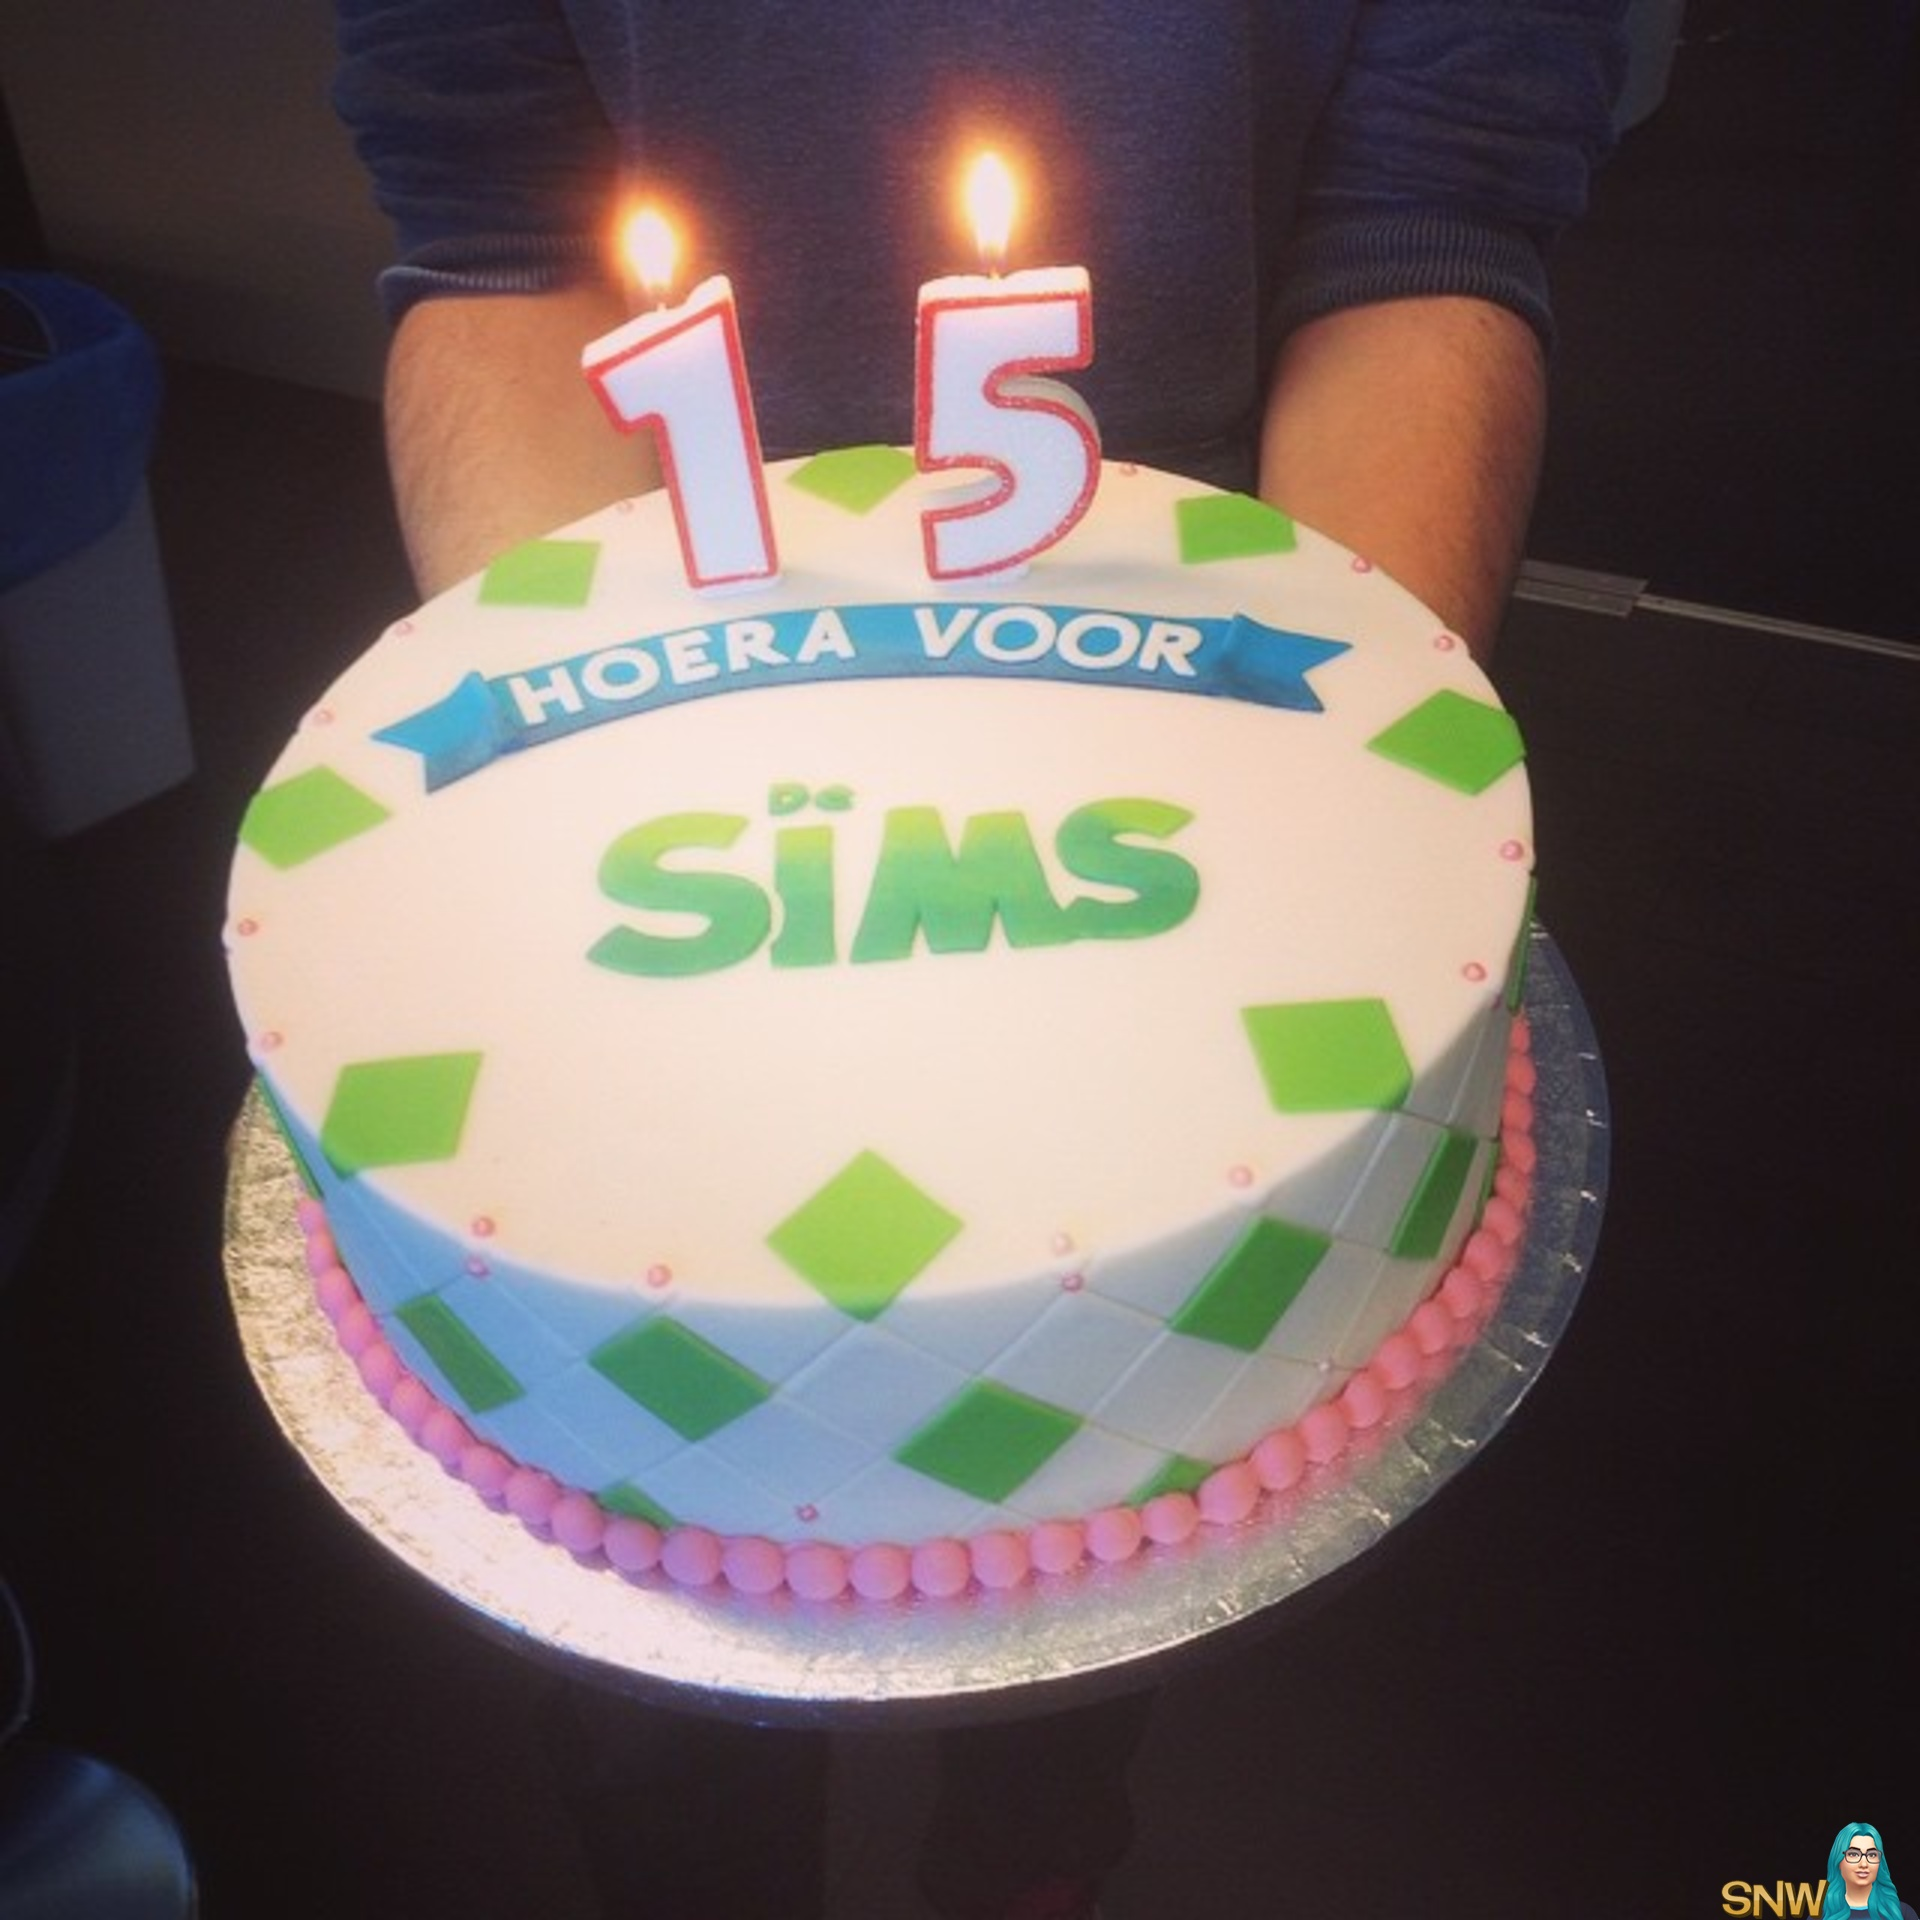 How To Get A Birthday Cake On Sims